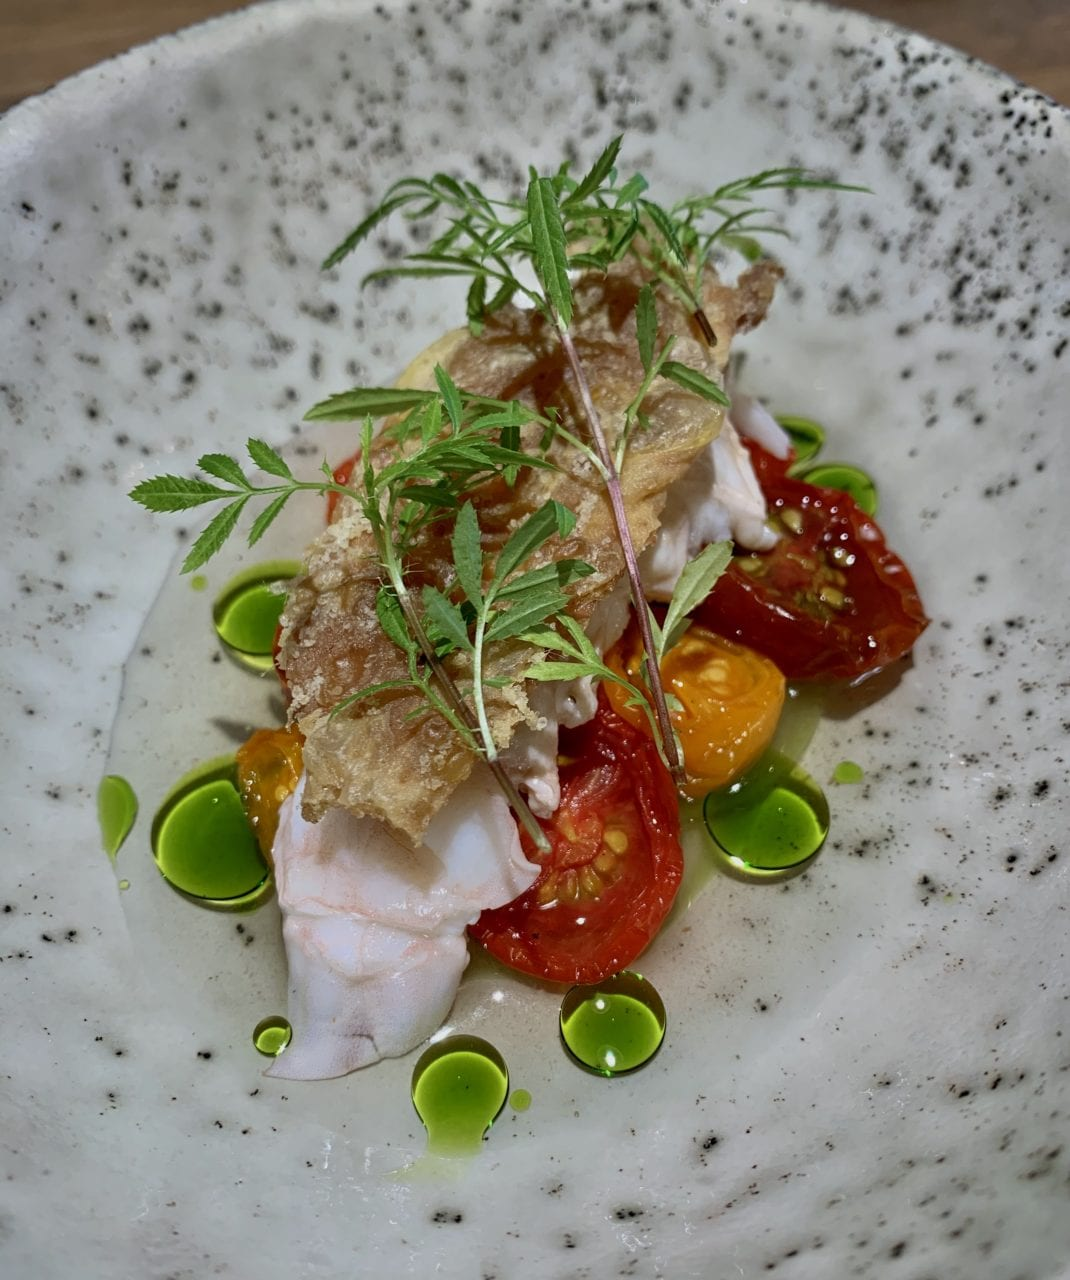 Tomatoes from Orelund with freshly cooked lobster